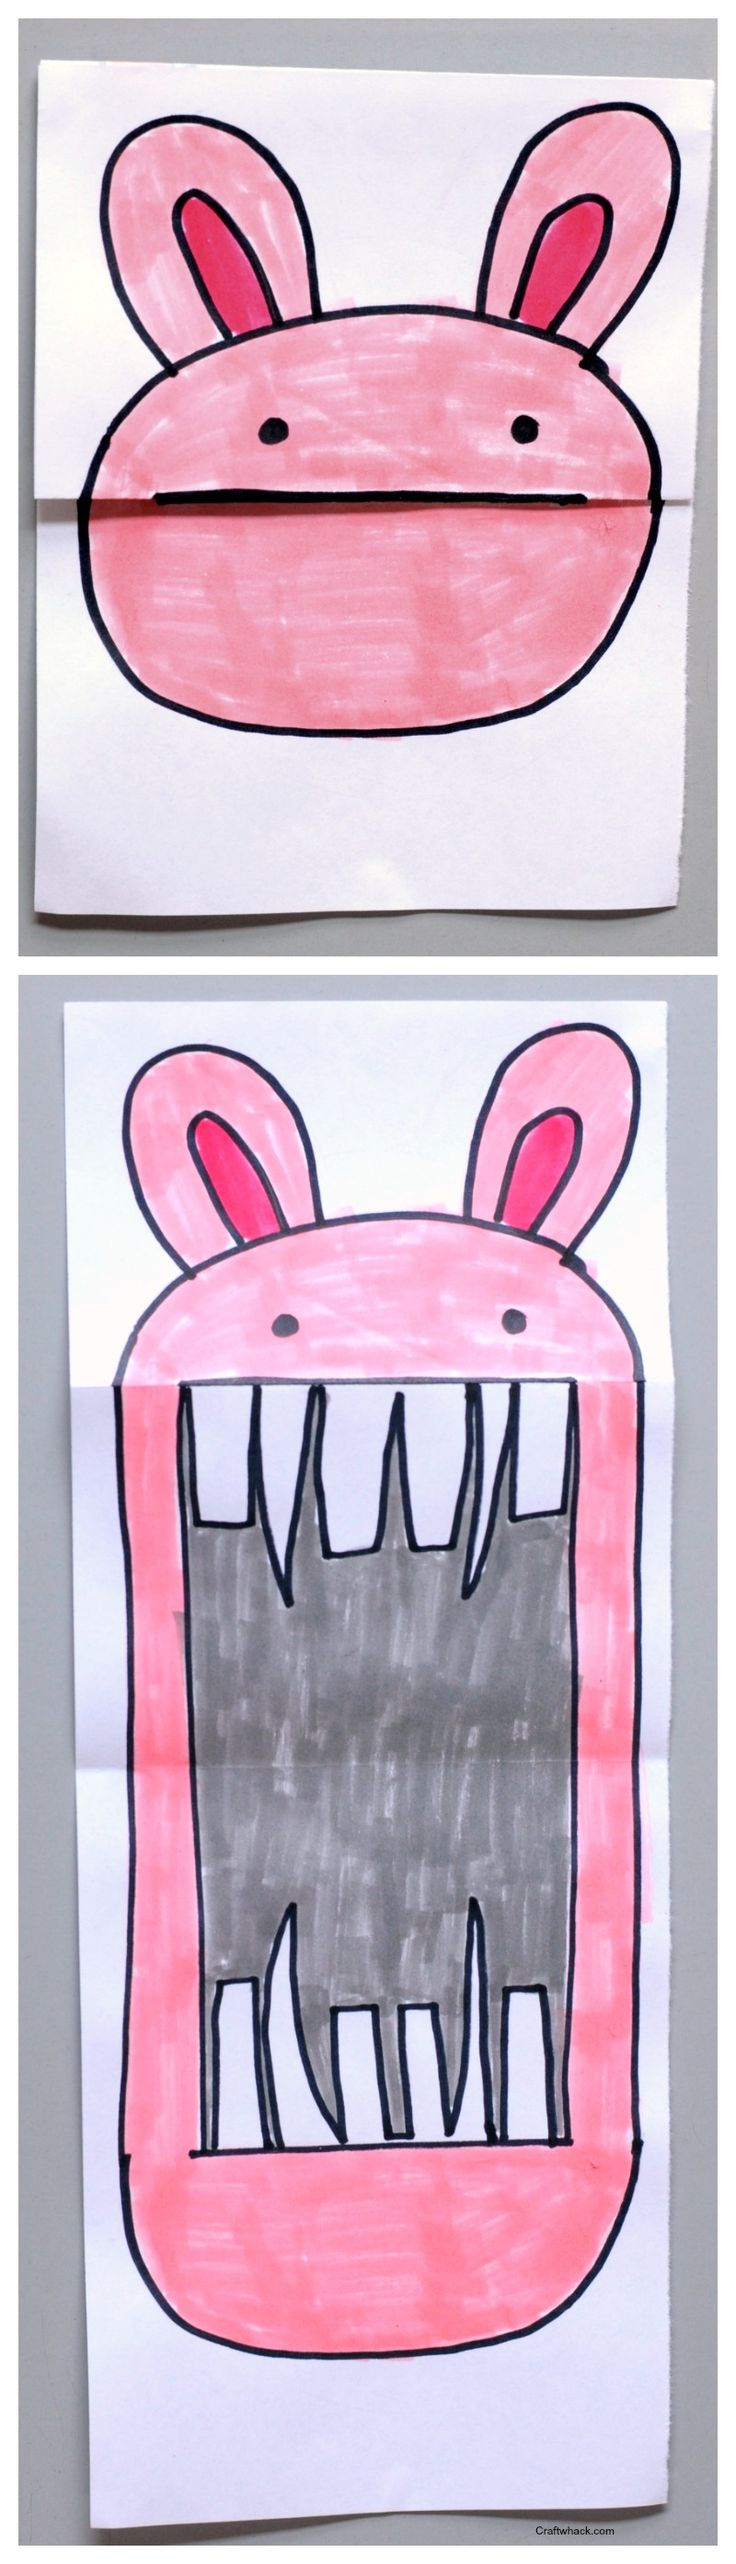 How fun! Can add teeth to sooo many different cute animals! Folded bunny paper art project • art projects for kids • easy art projects • Craftwhack.com